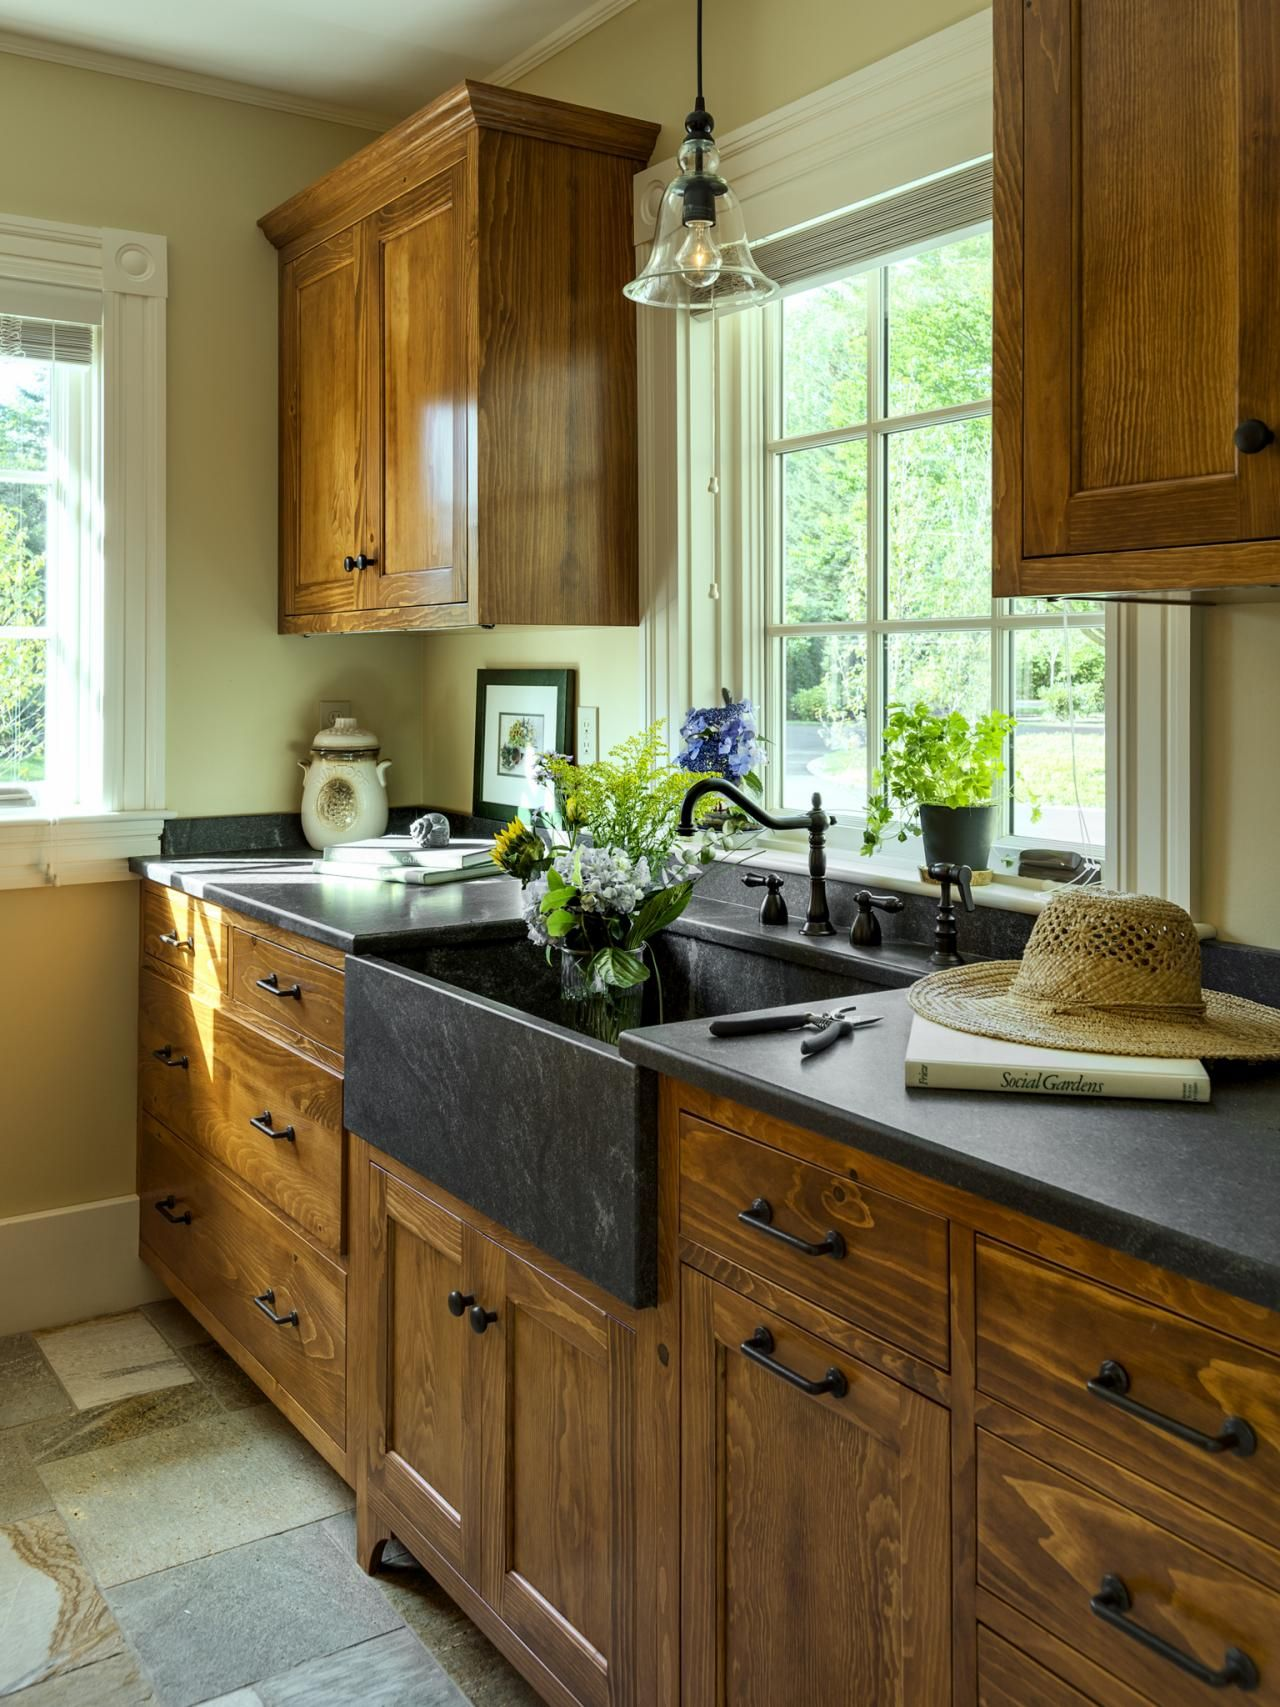 Top 50 pinterest gallery 2014 hgtv sinks and kitchens for Dark wood kitchen units